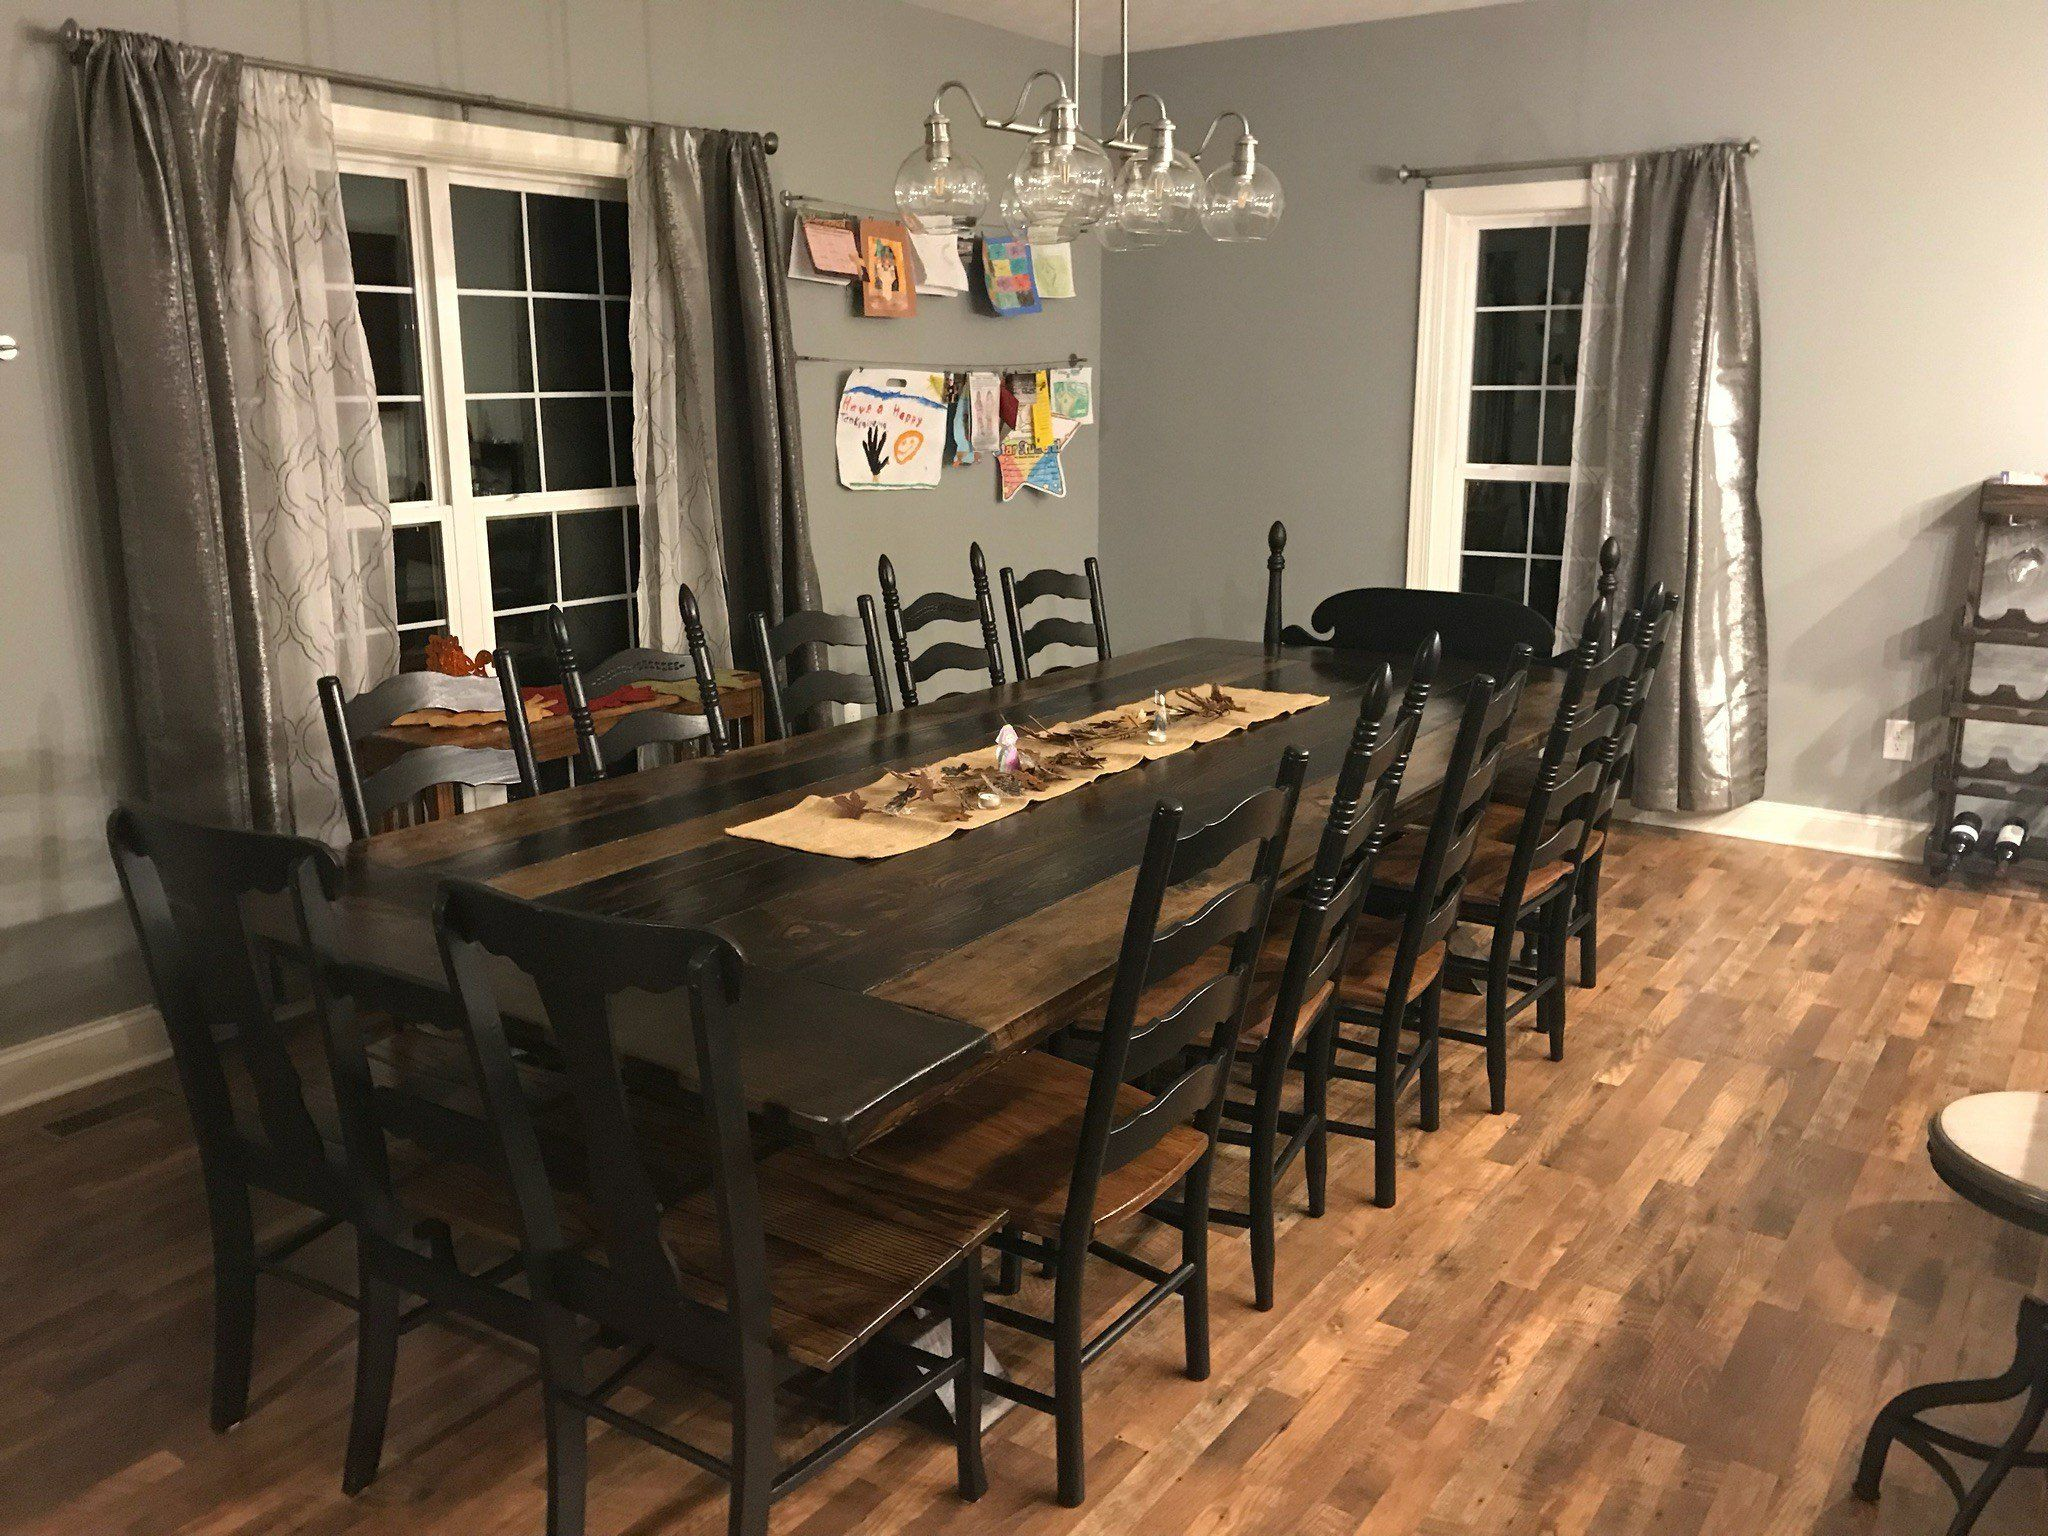 Farmhouse Table And Chairs 11 Ft Long With Seating For 14 People